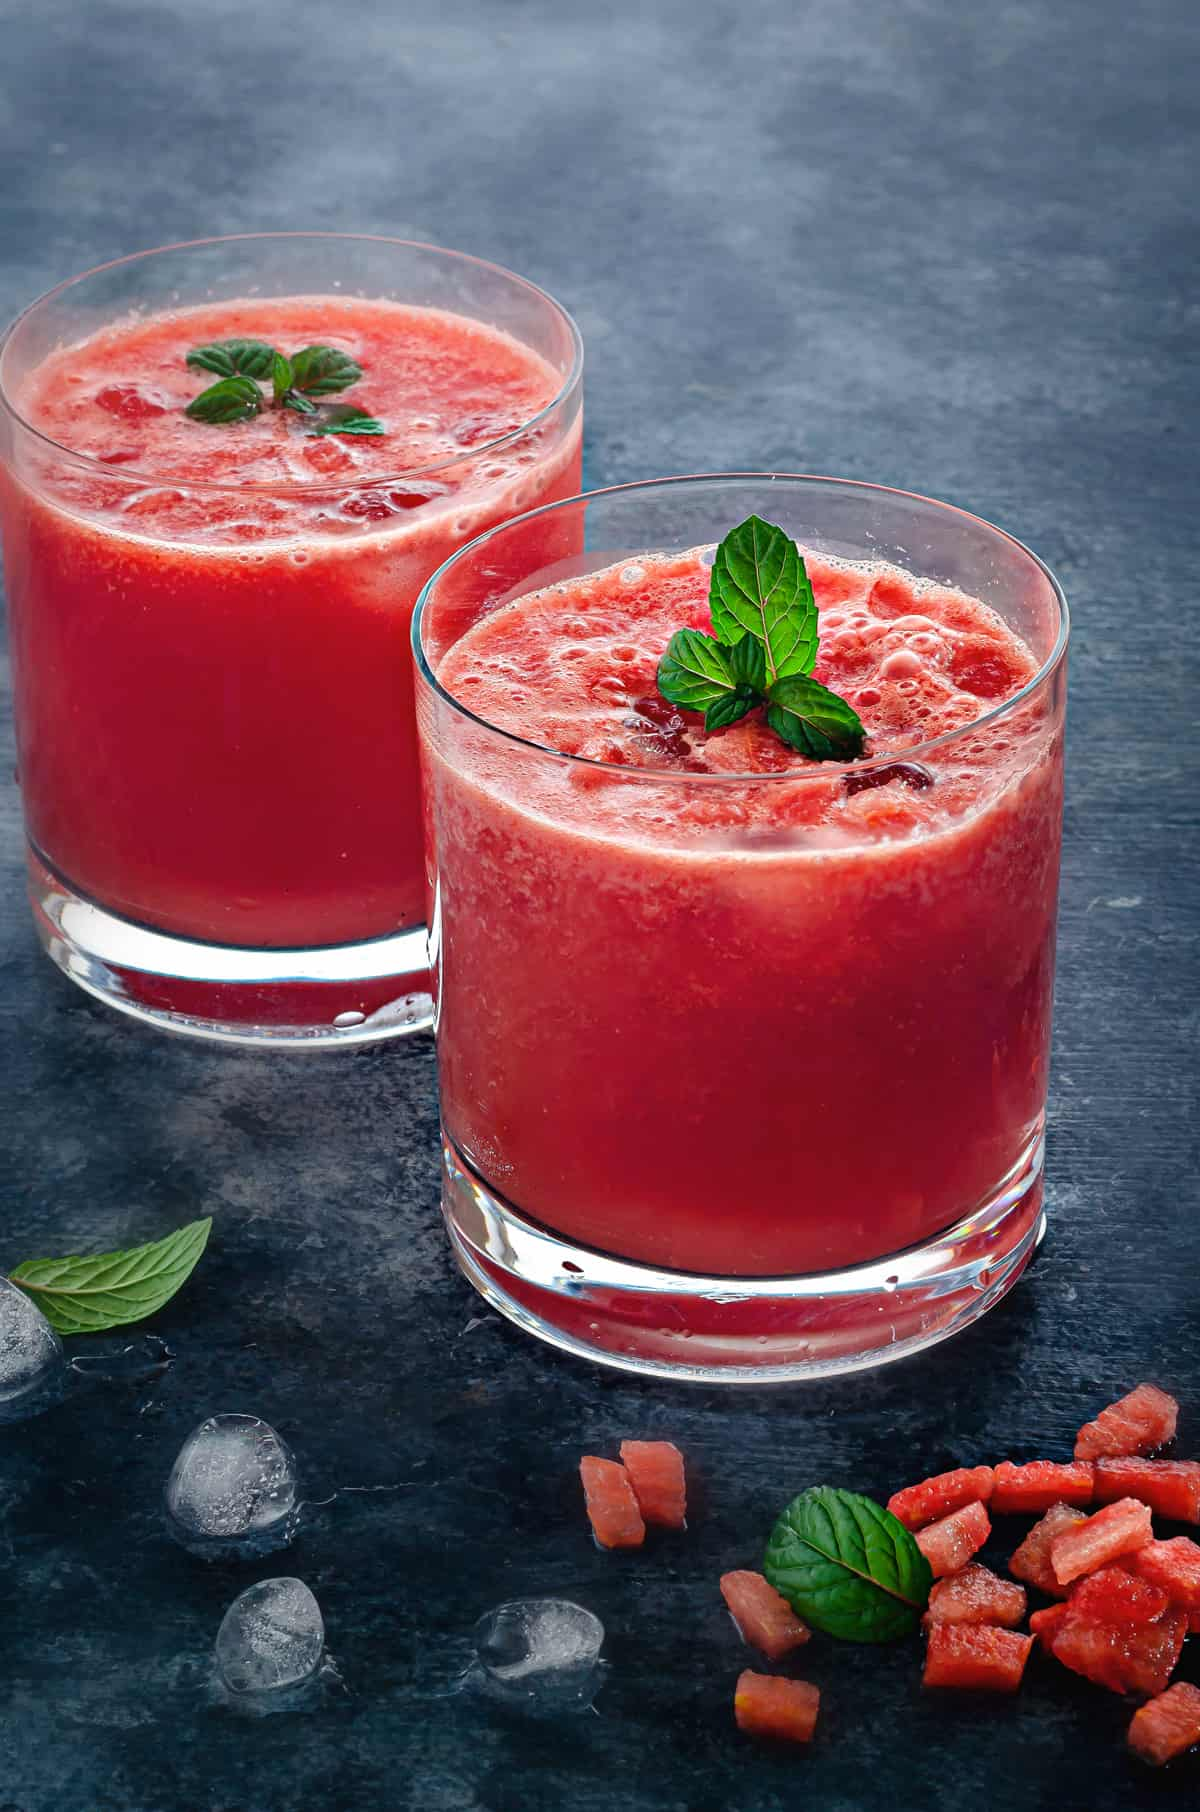 two rocks glasses of fresh watermelon juice on ice garnished with fresh mint leaves